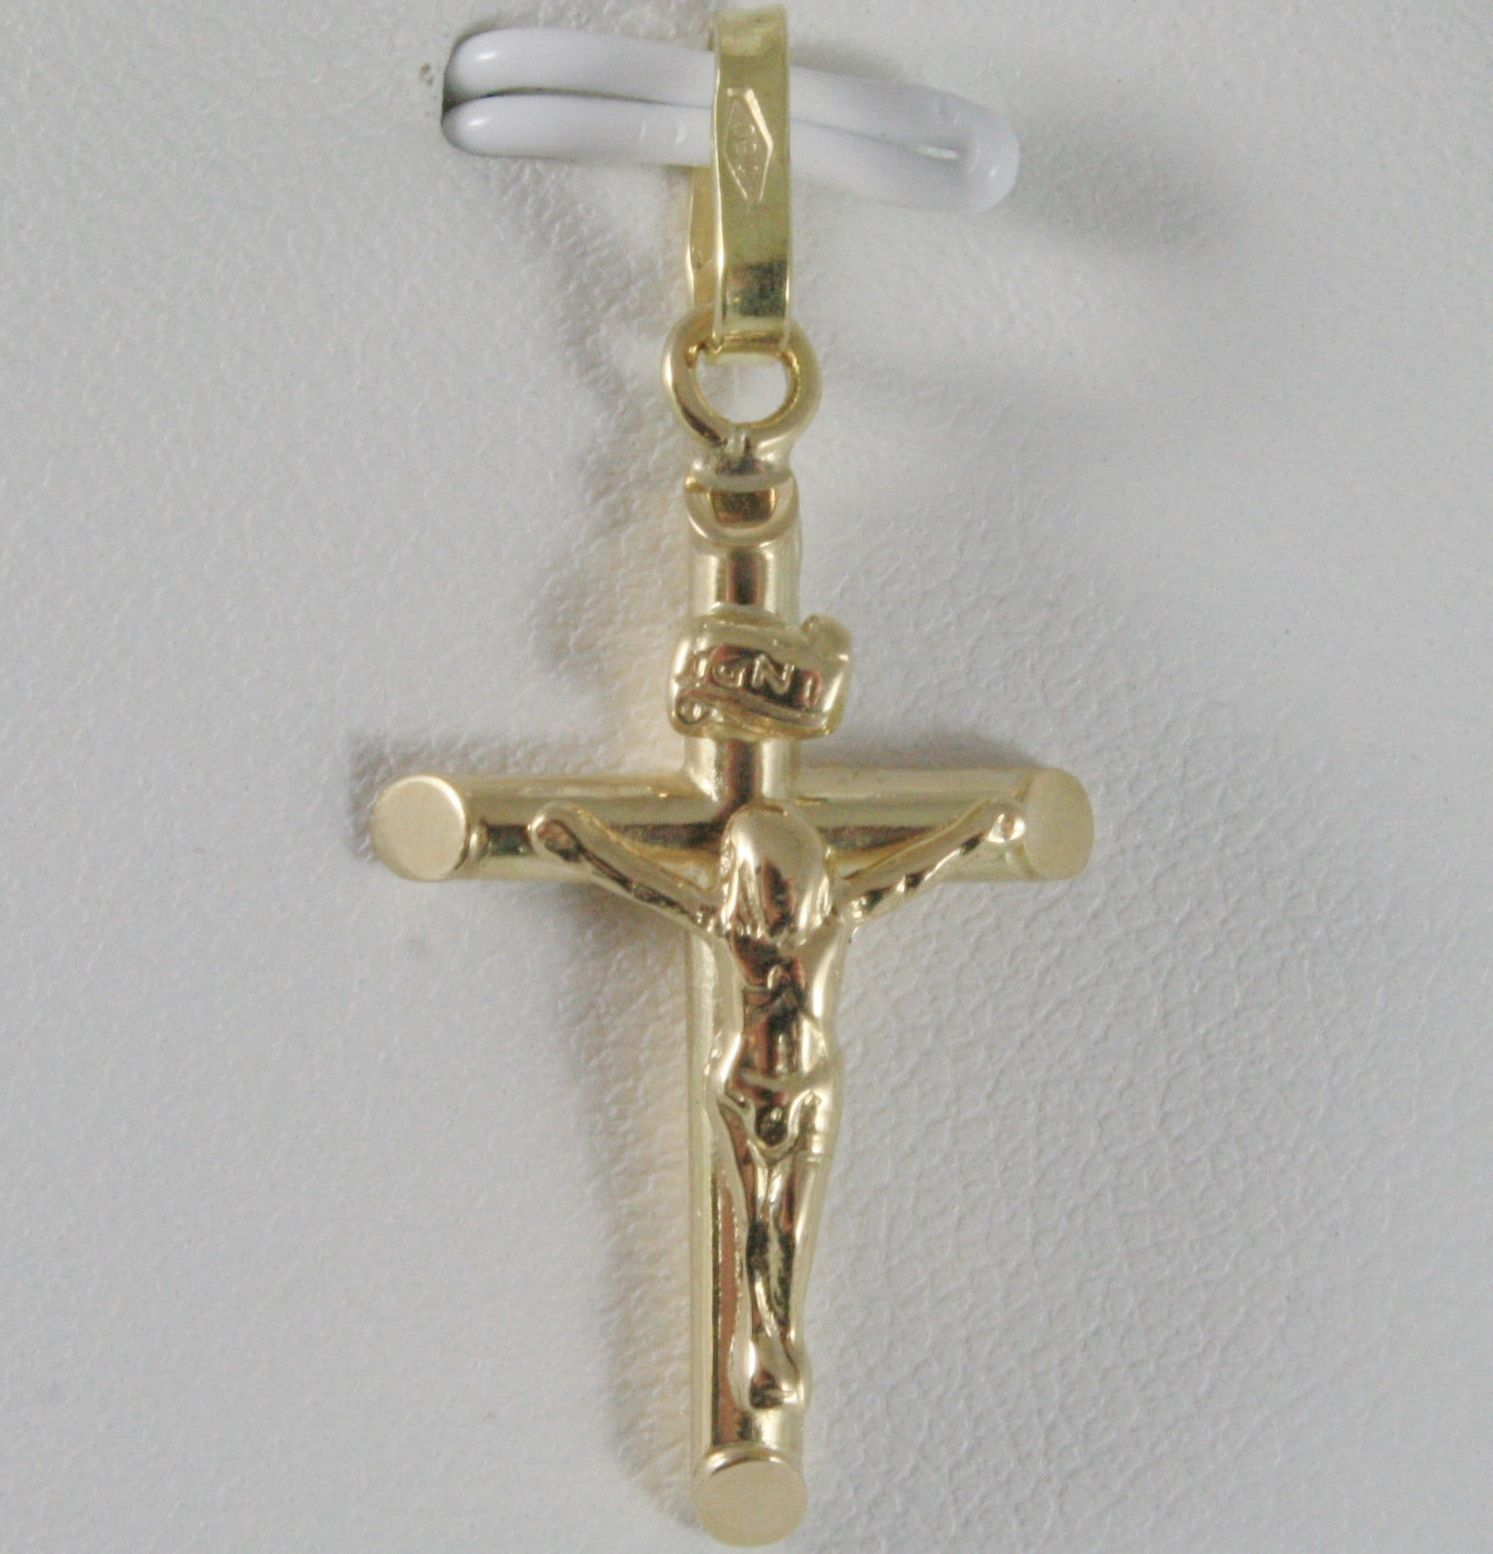 18K YELLOW GOLD CROSS WITH JESUS, ROUNDED TUBE, SHINY 1.22 INCHES, MADE IN ITALY